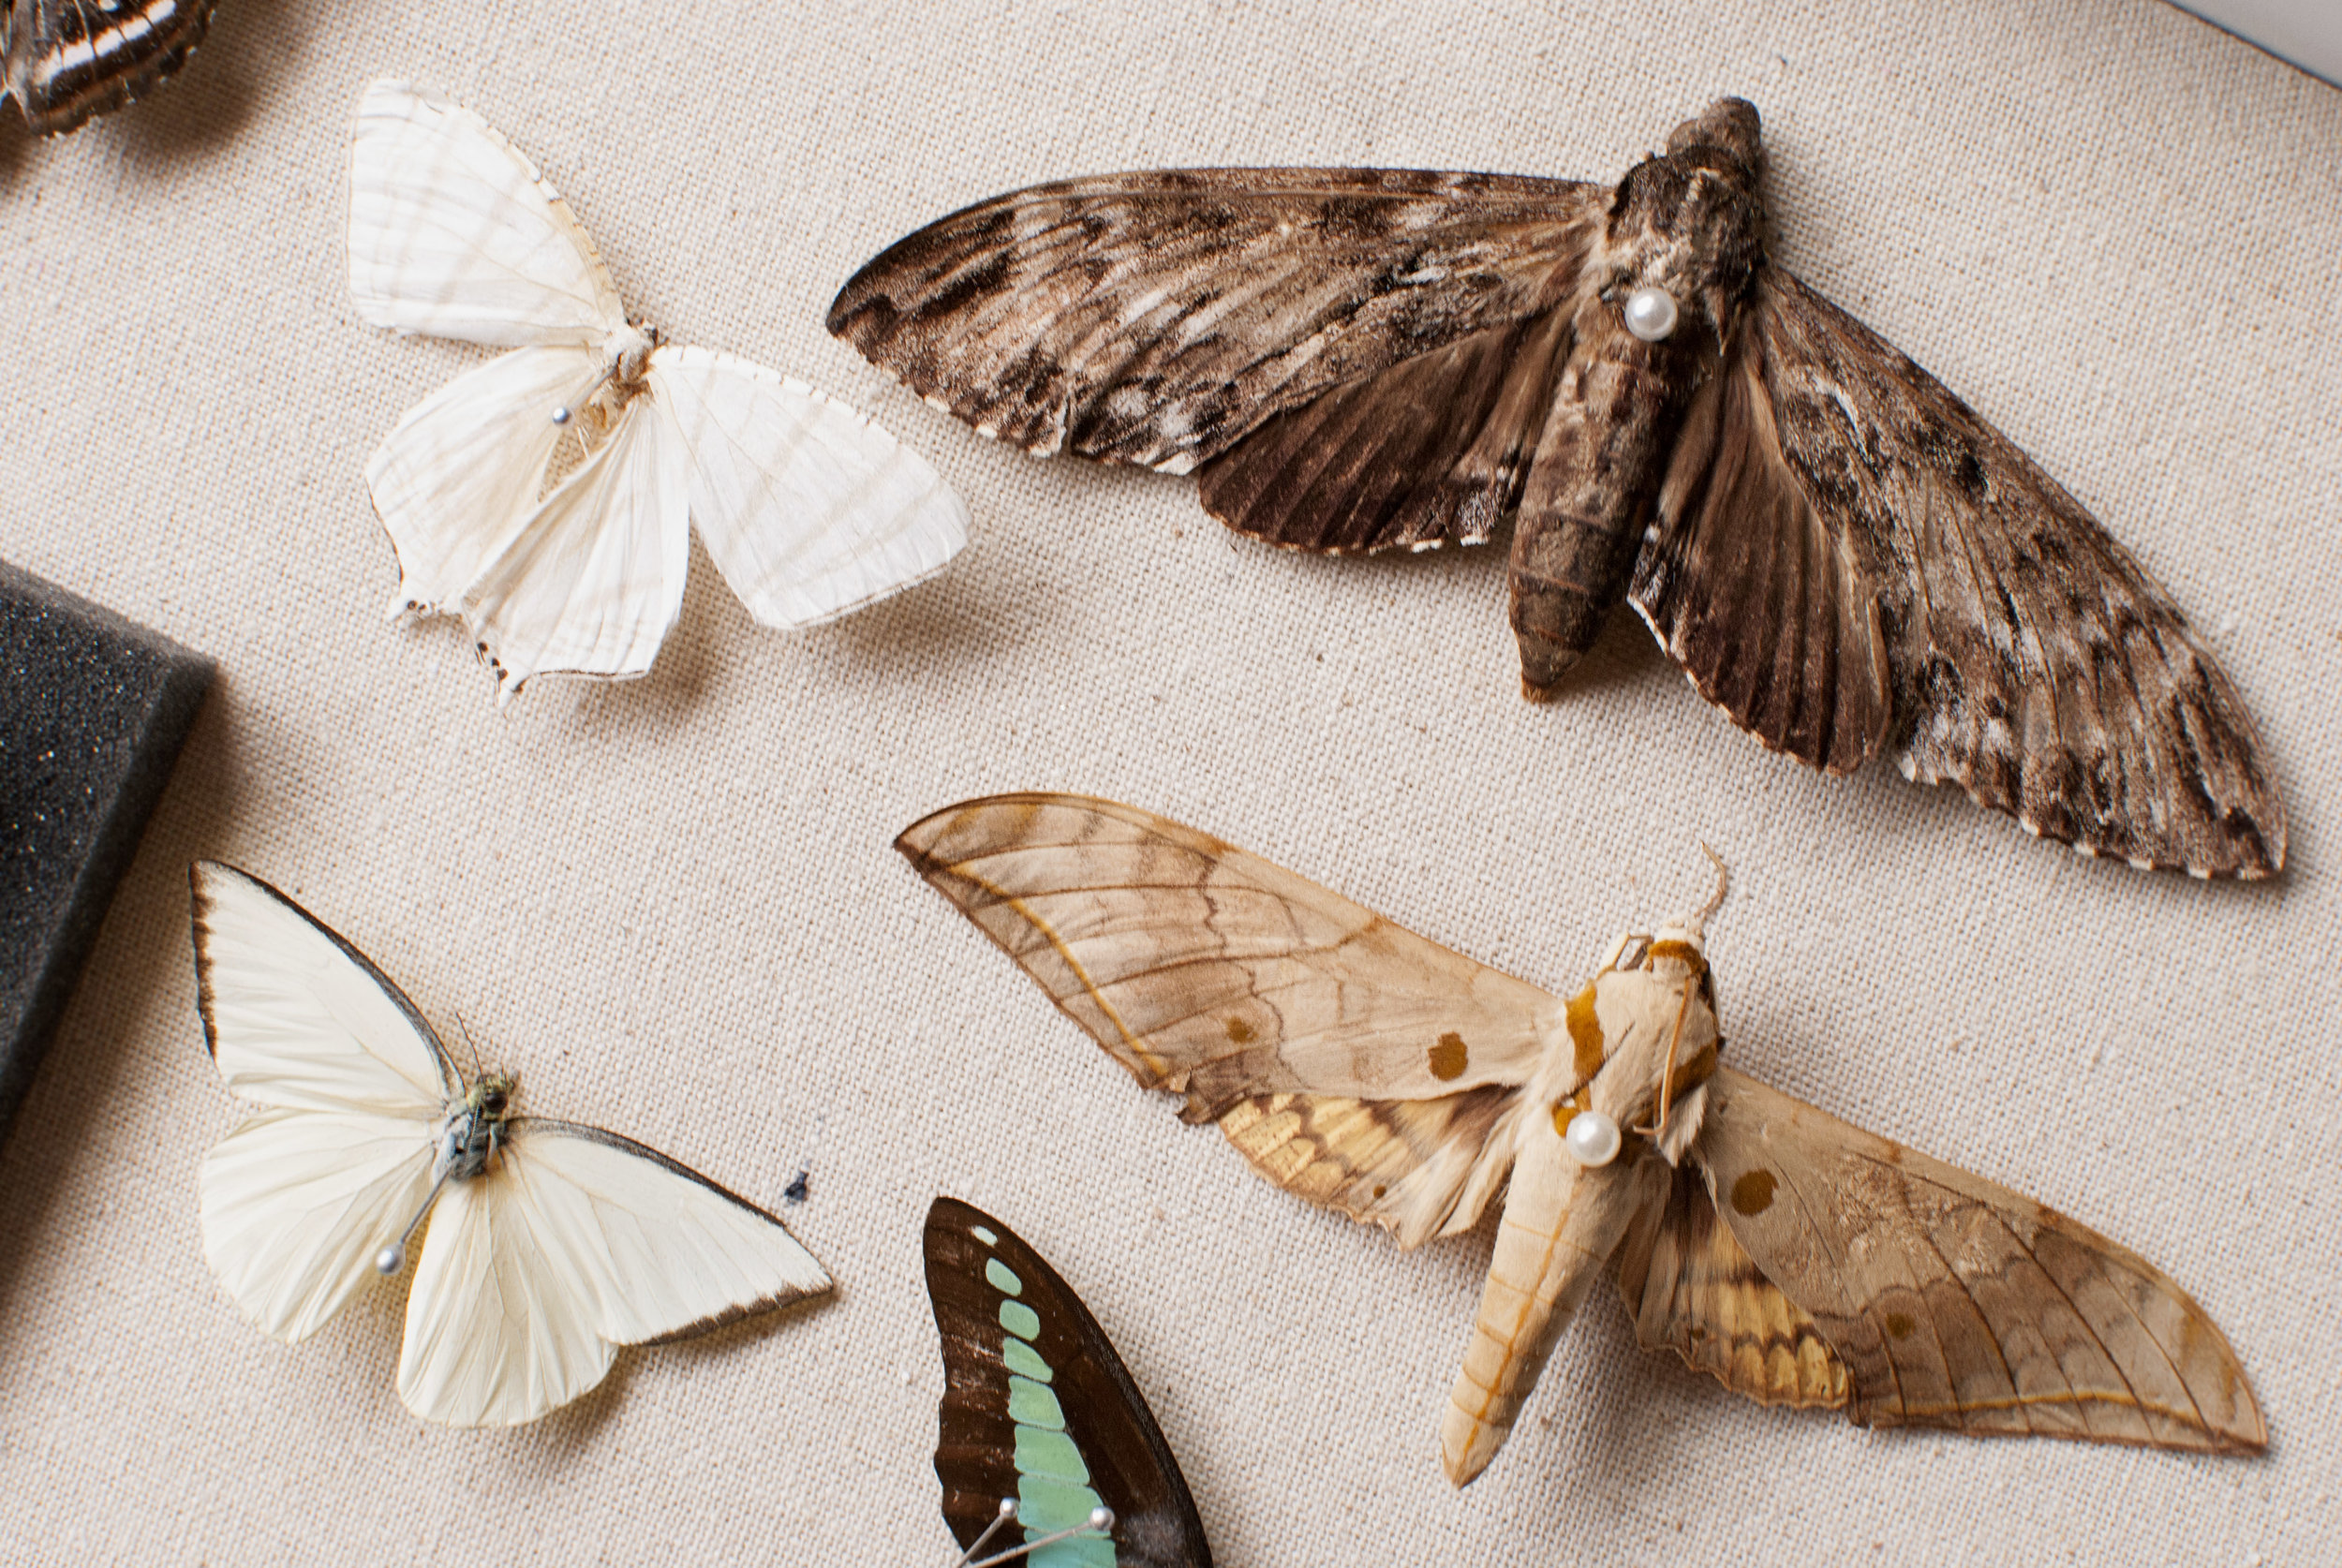 An assortment of moths and butterflies!